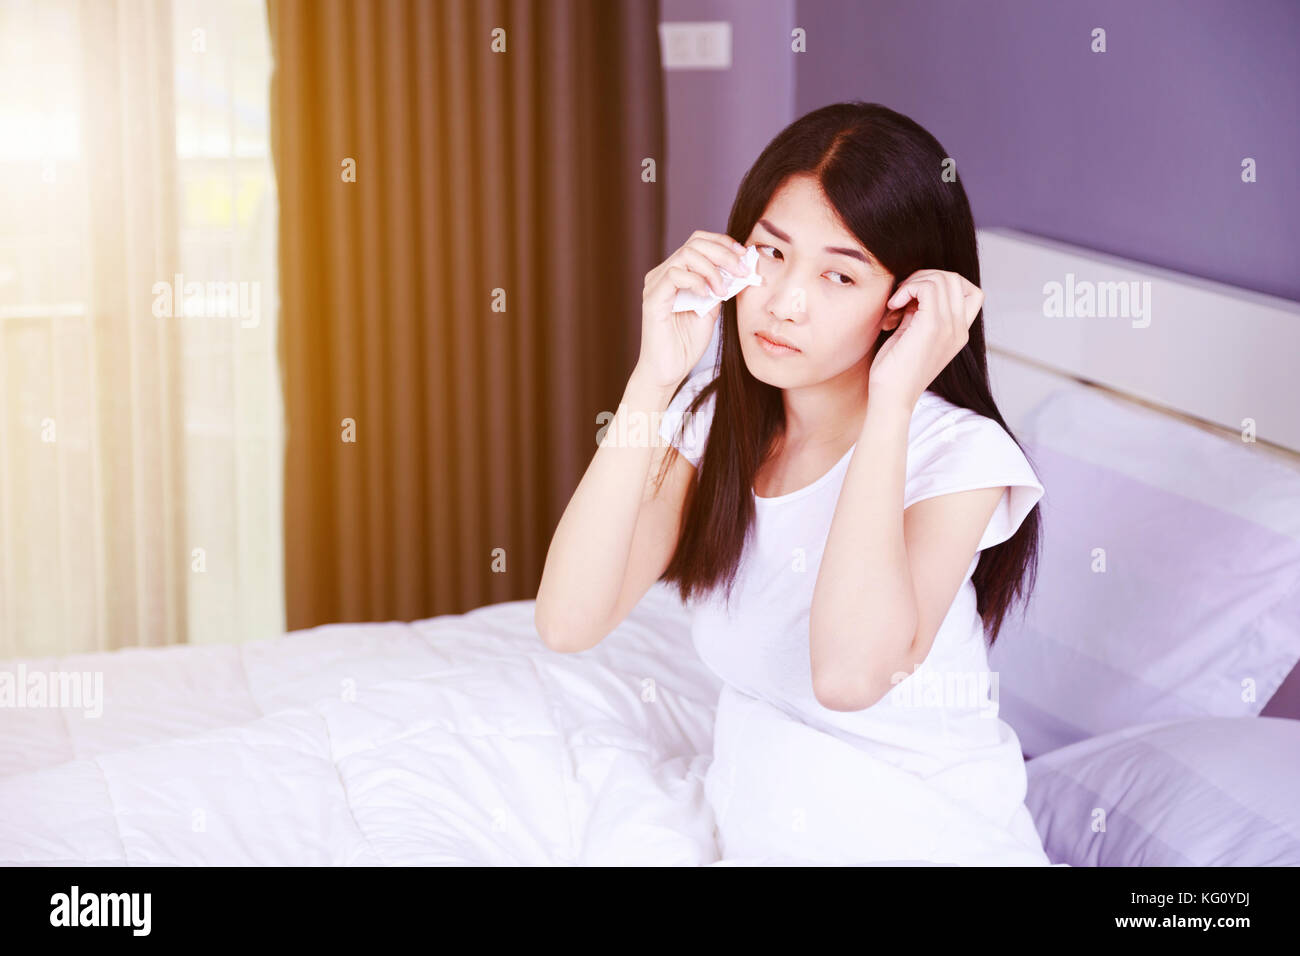 woman crying in bed woman crying bed alone stock photos woman crying bed 7517